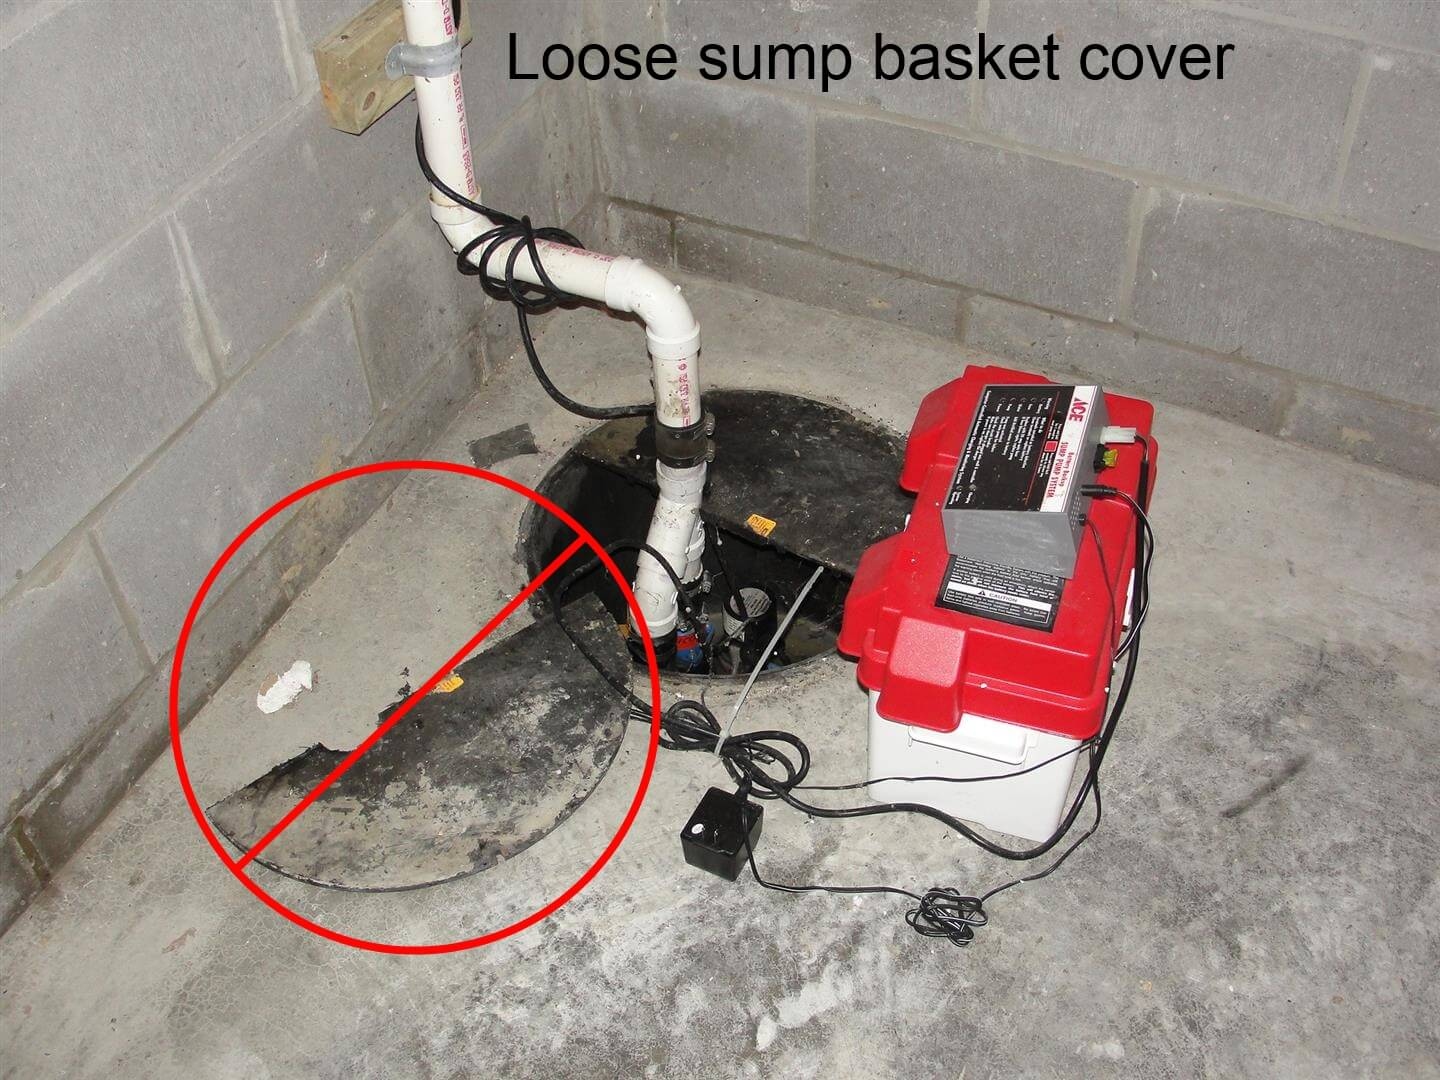 hight resolution of a loose or missing sump basket cover